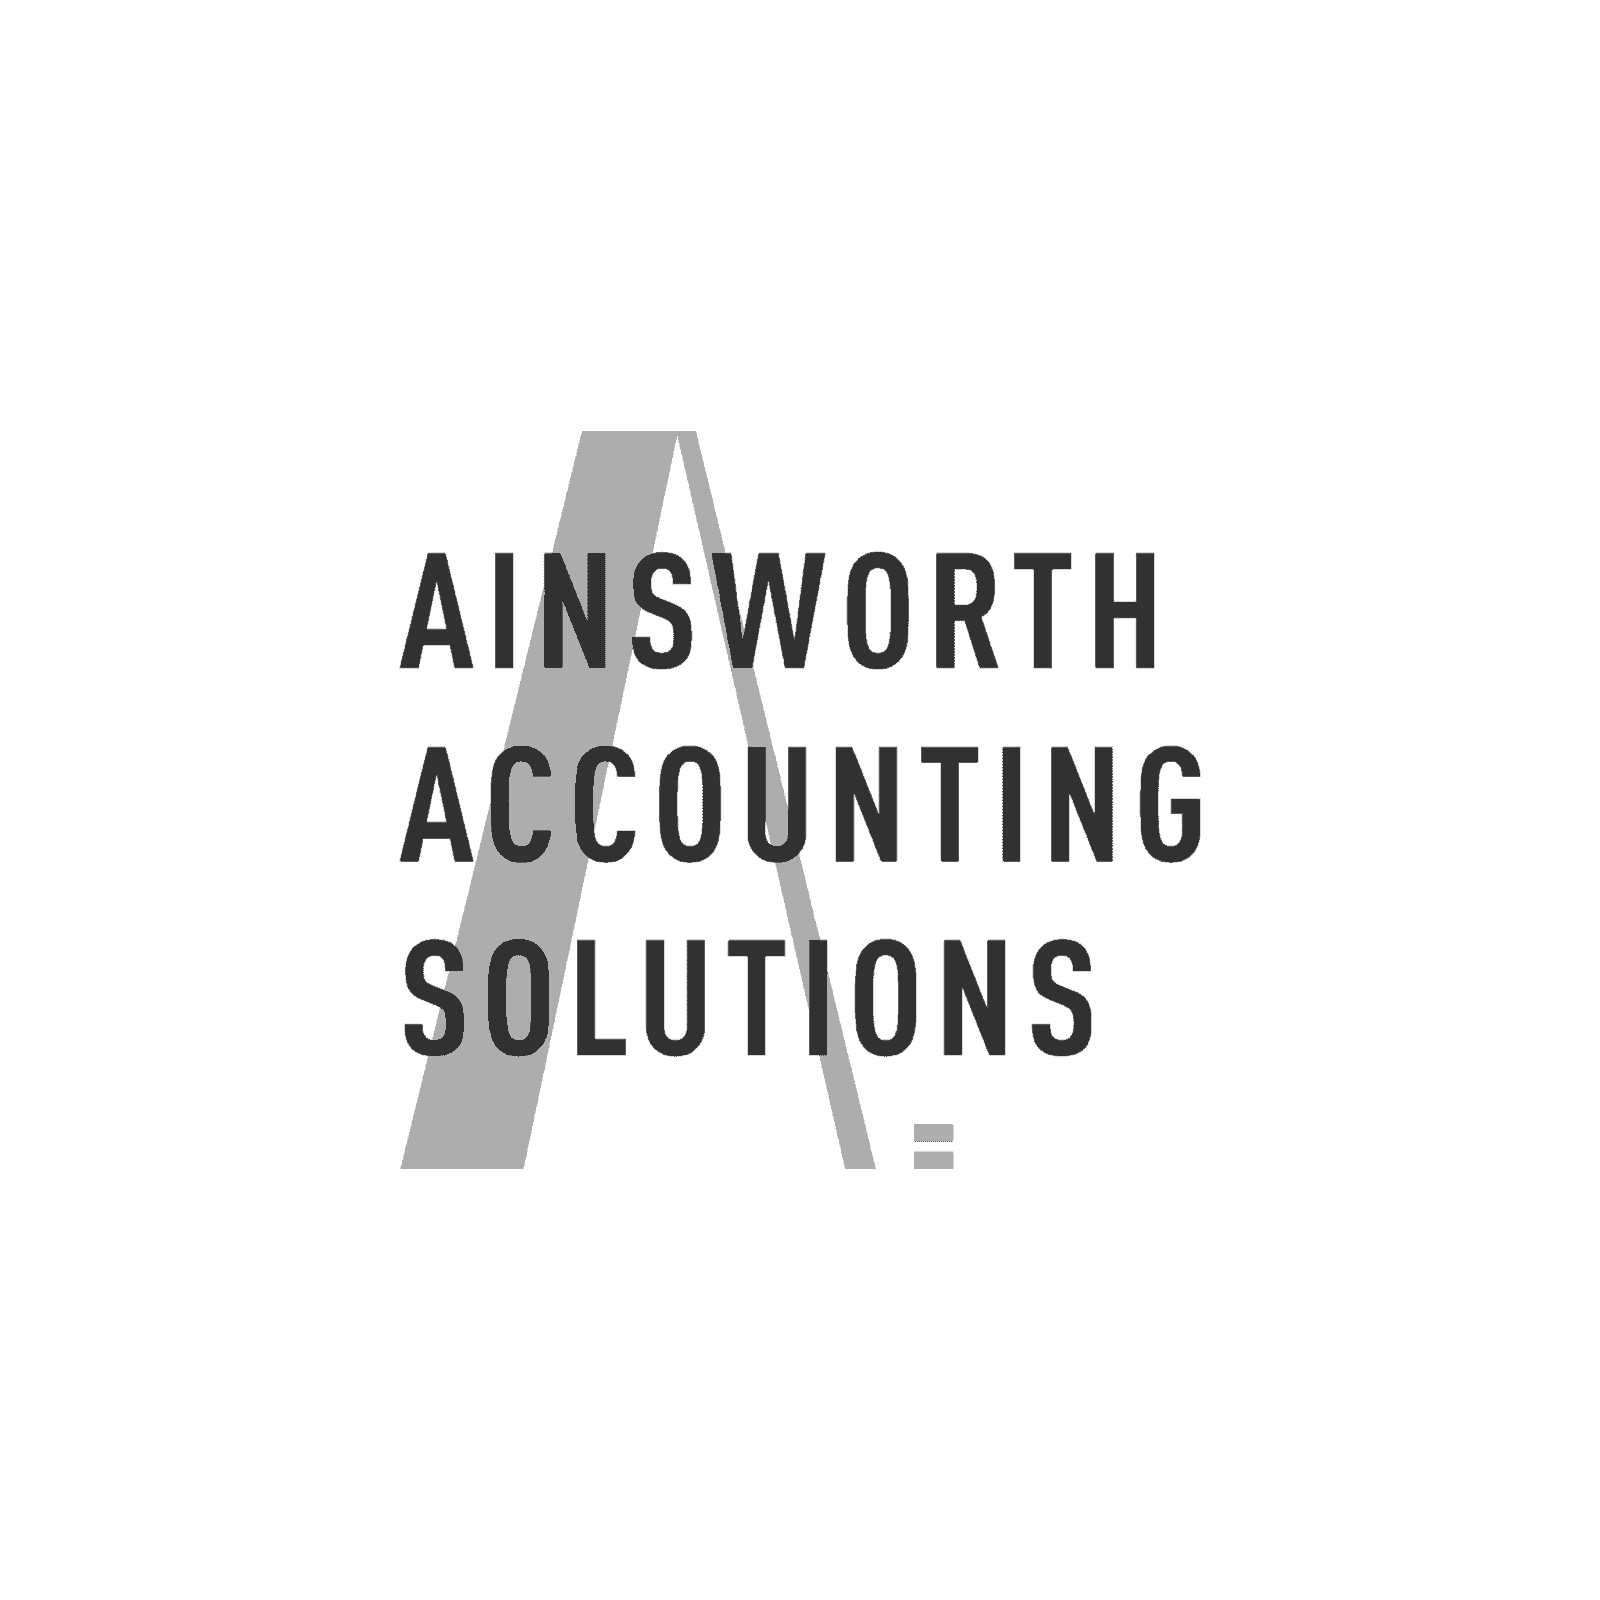 Ainsworth Grayscale Logo